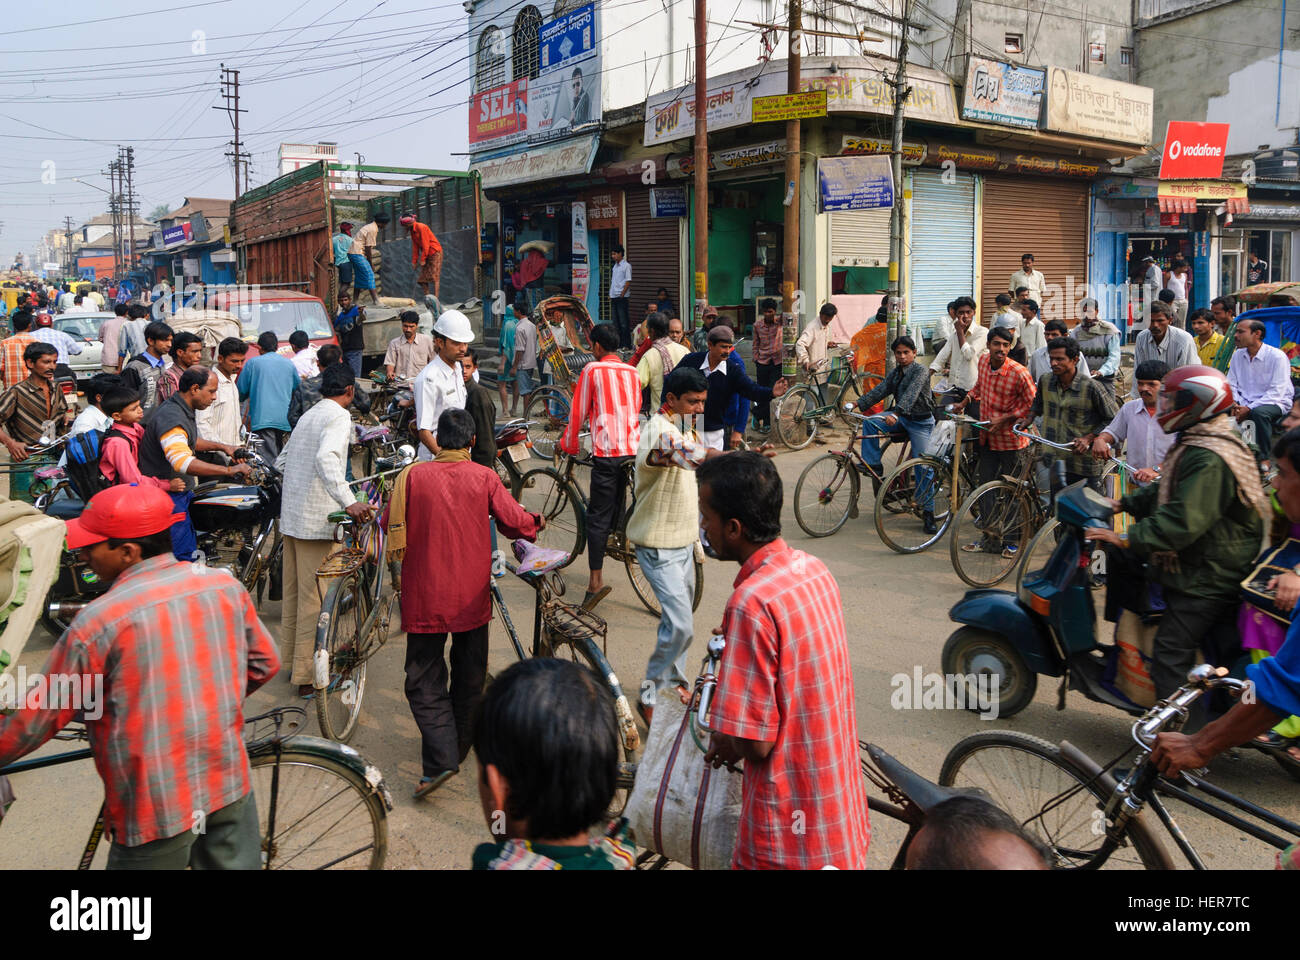 Agartala: Police are trying to arrange a traffic jam, Tripura, India - Stock Image